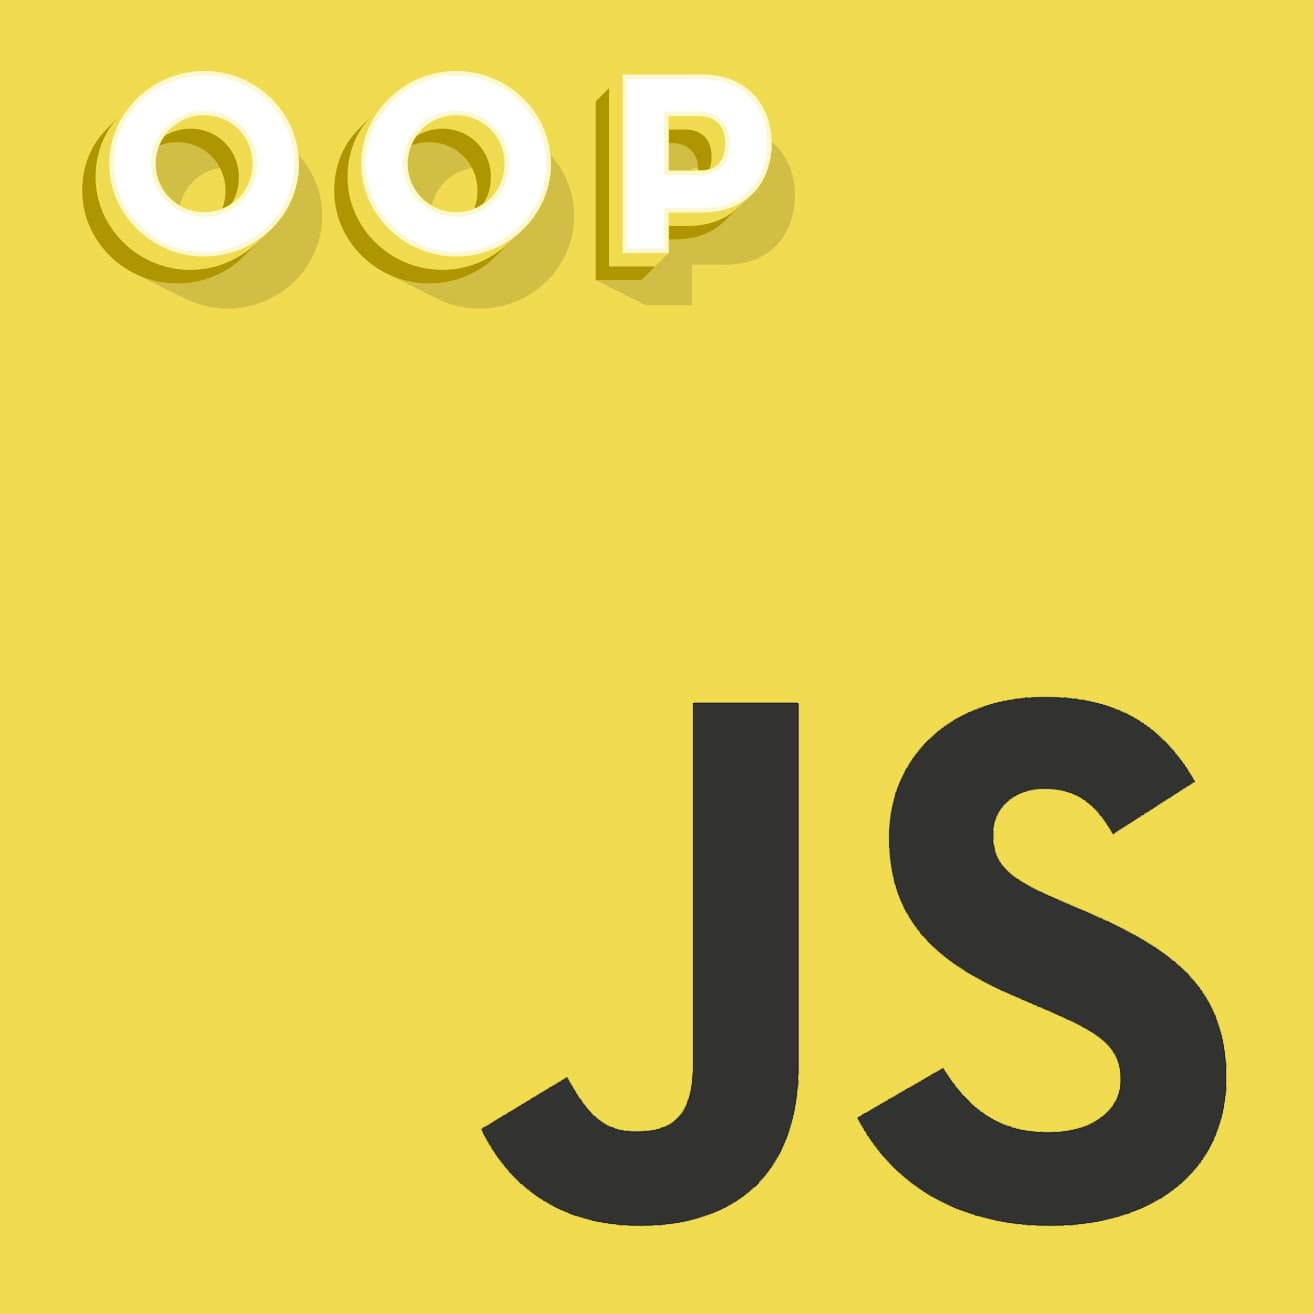 JavaScript: The Hard Parts On Object-Oriented Programming